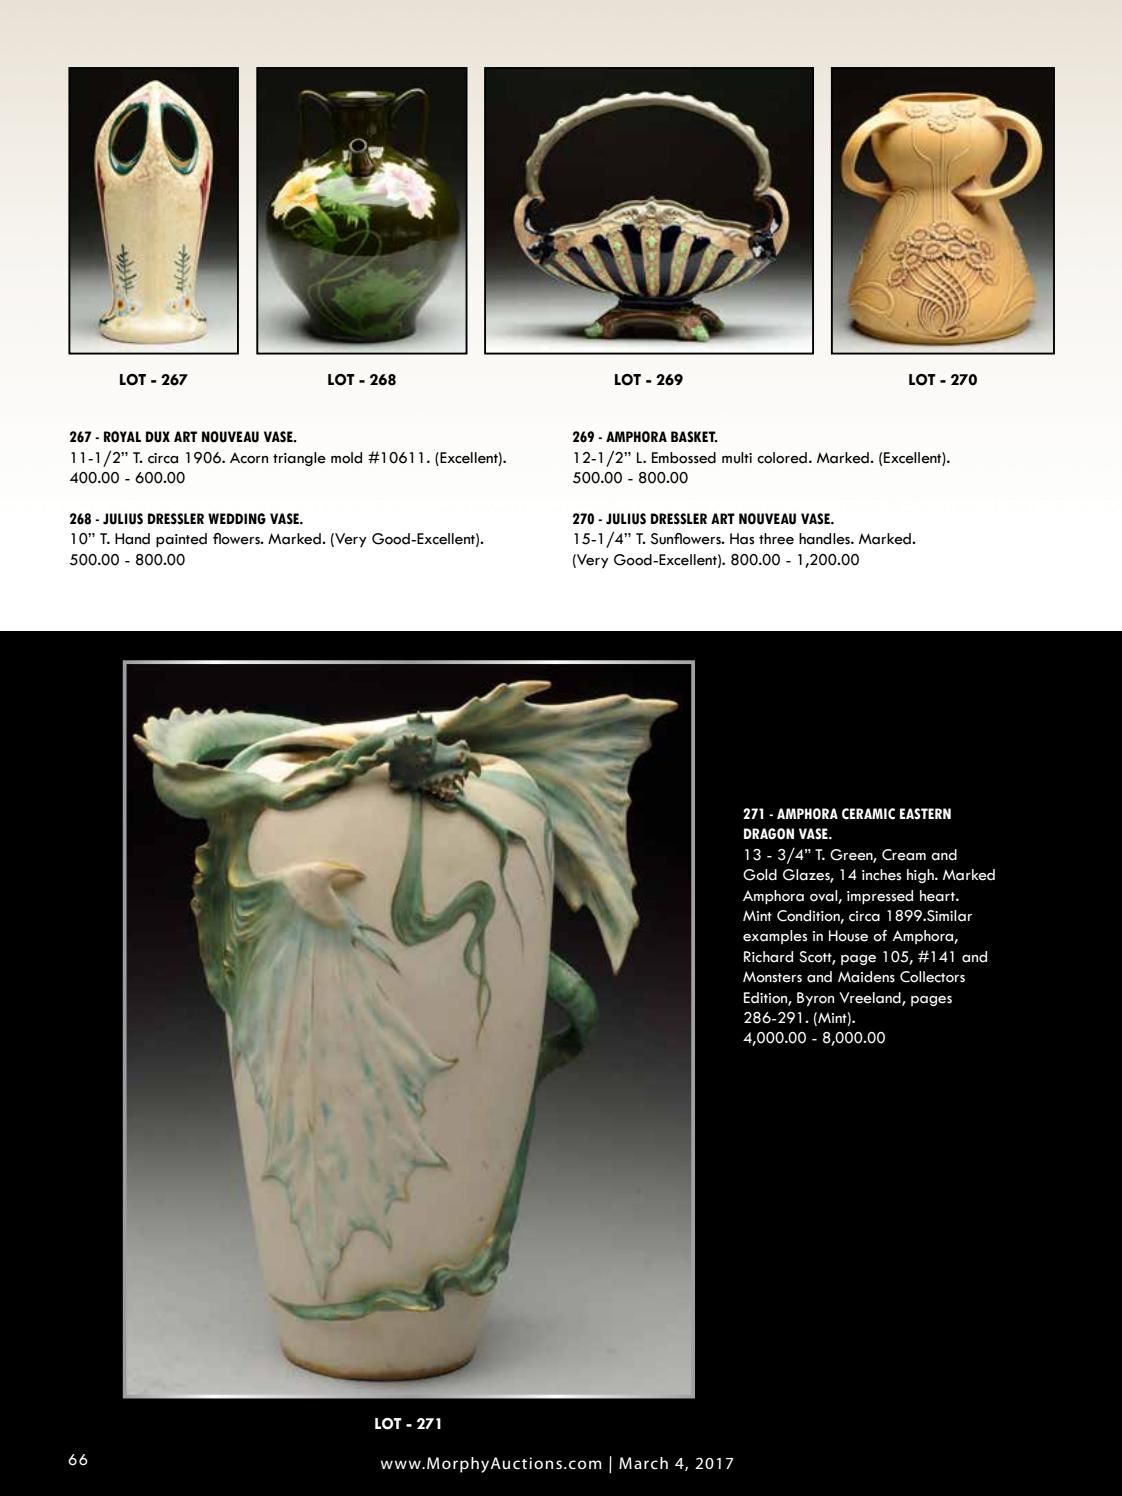 2017 March 4-5 Fine & Decorative Arts by Morphy Auctions - issuu